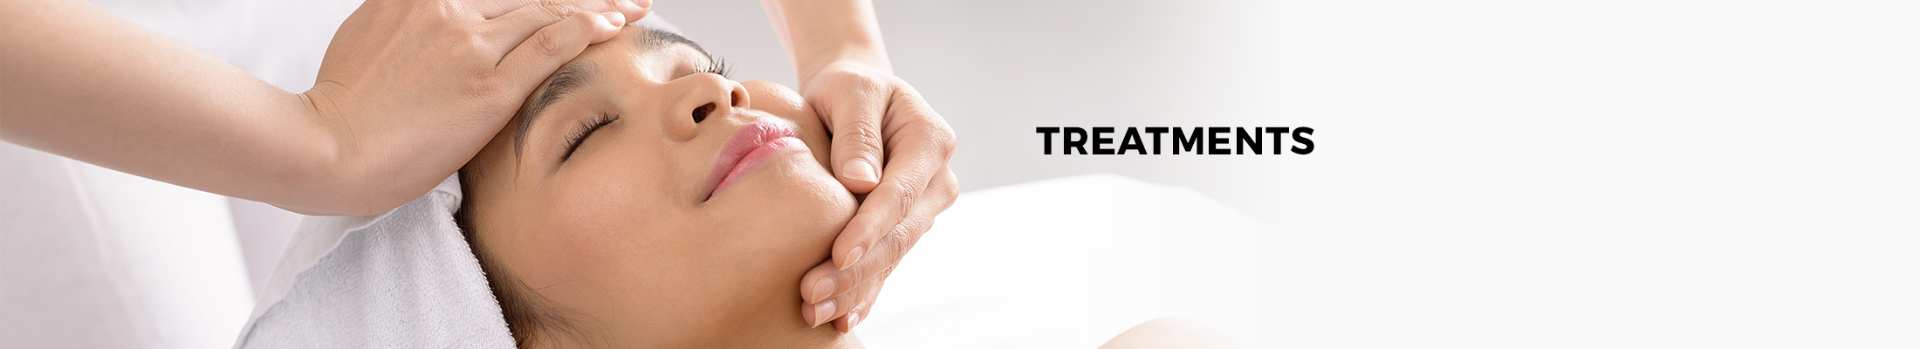 Treatments_Banners-2200x400O2Treatments.png